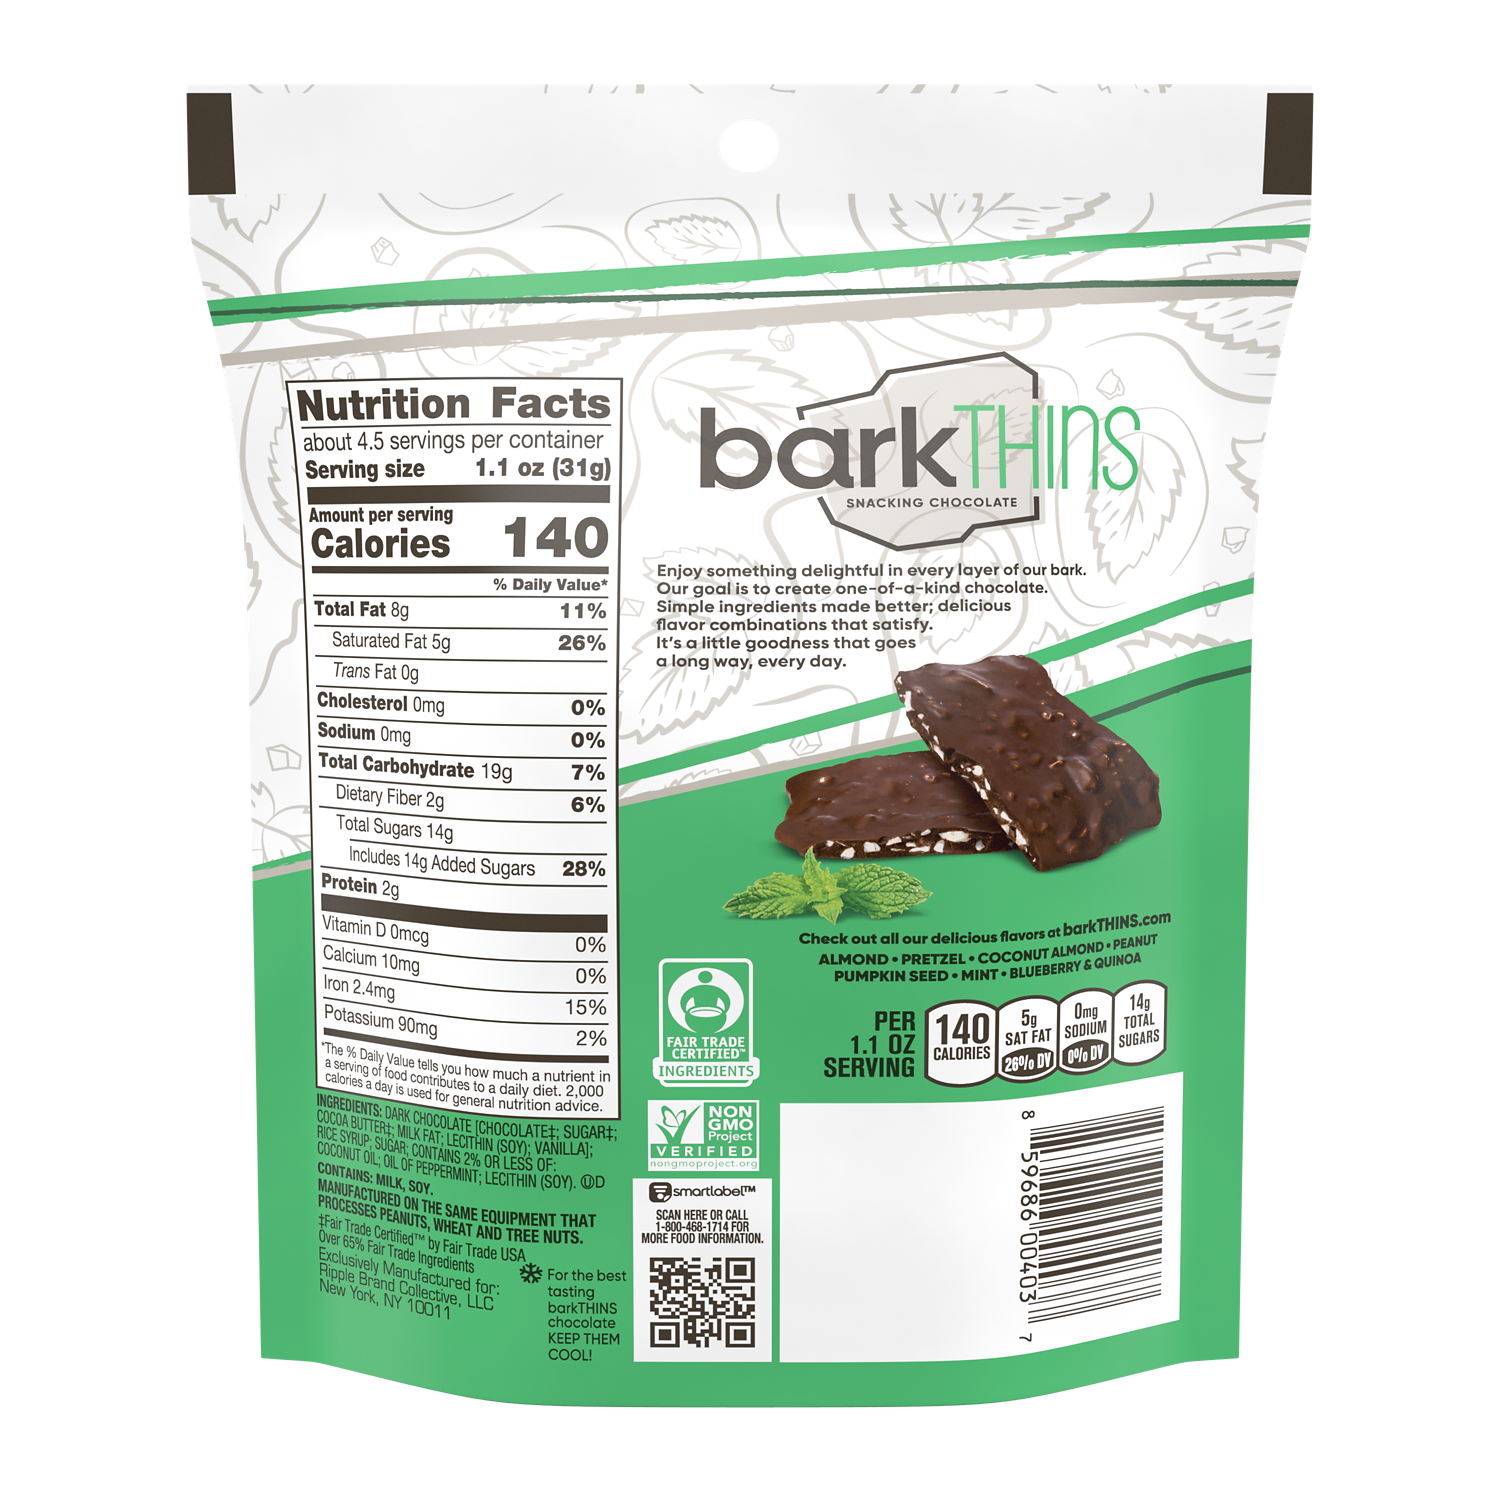 barkTHINS Dark Chocolate Mint Snacking Chocolate, 4.7 oz bag - Back of Package